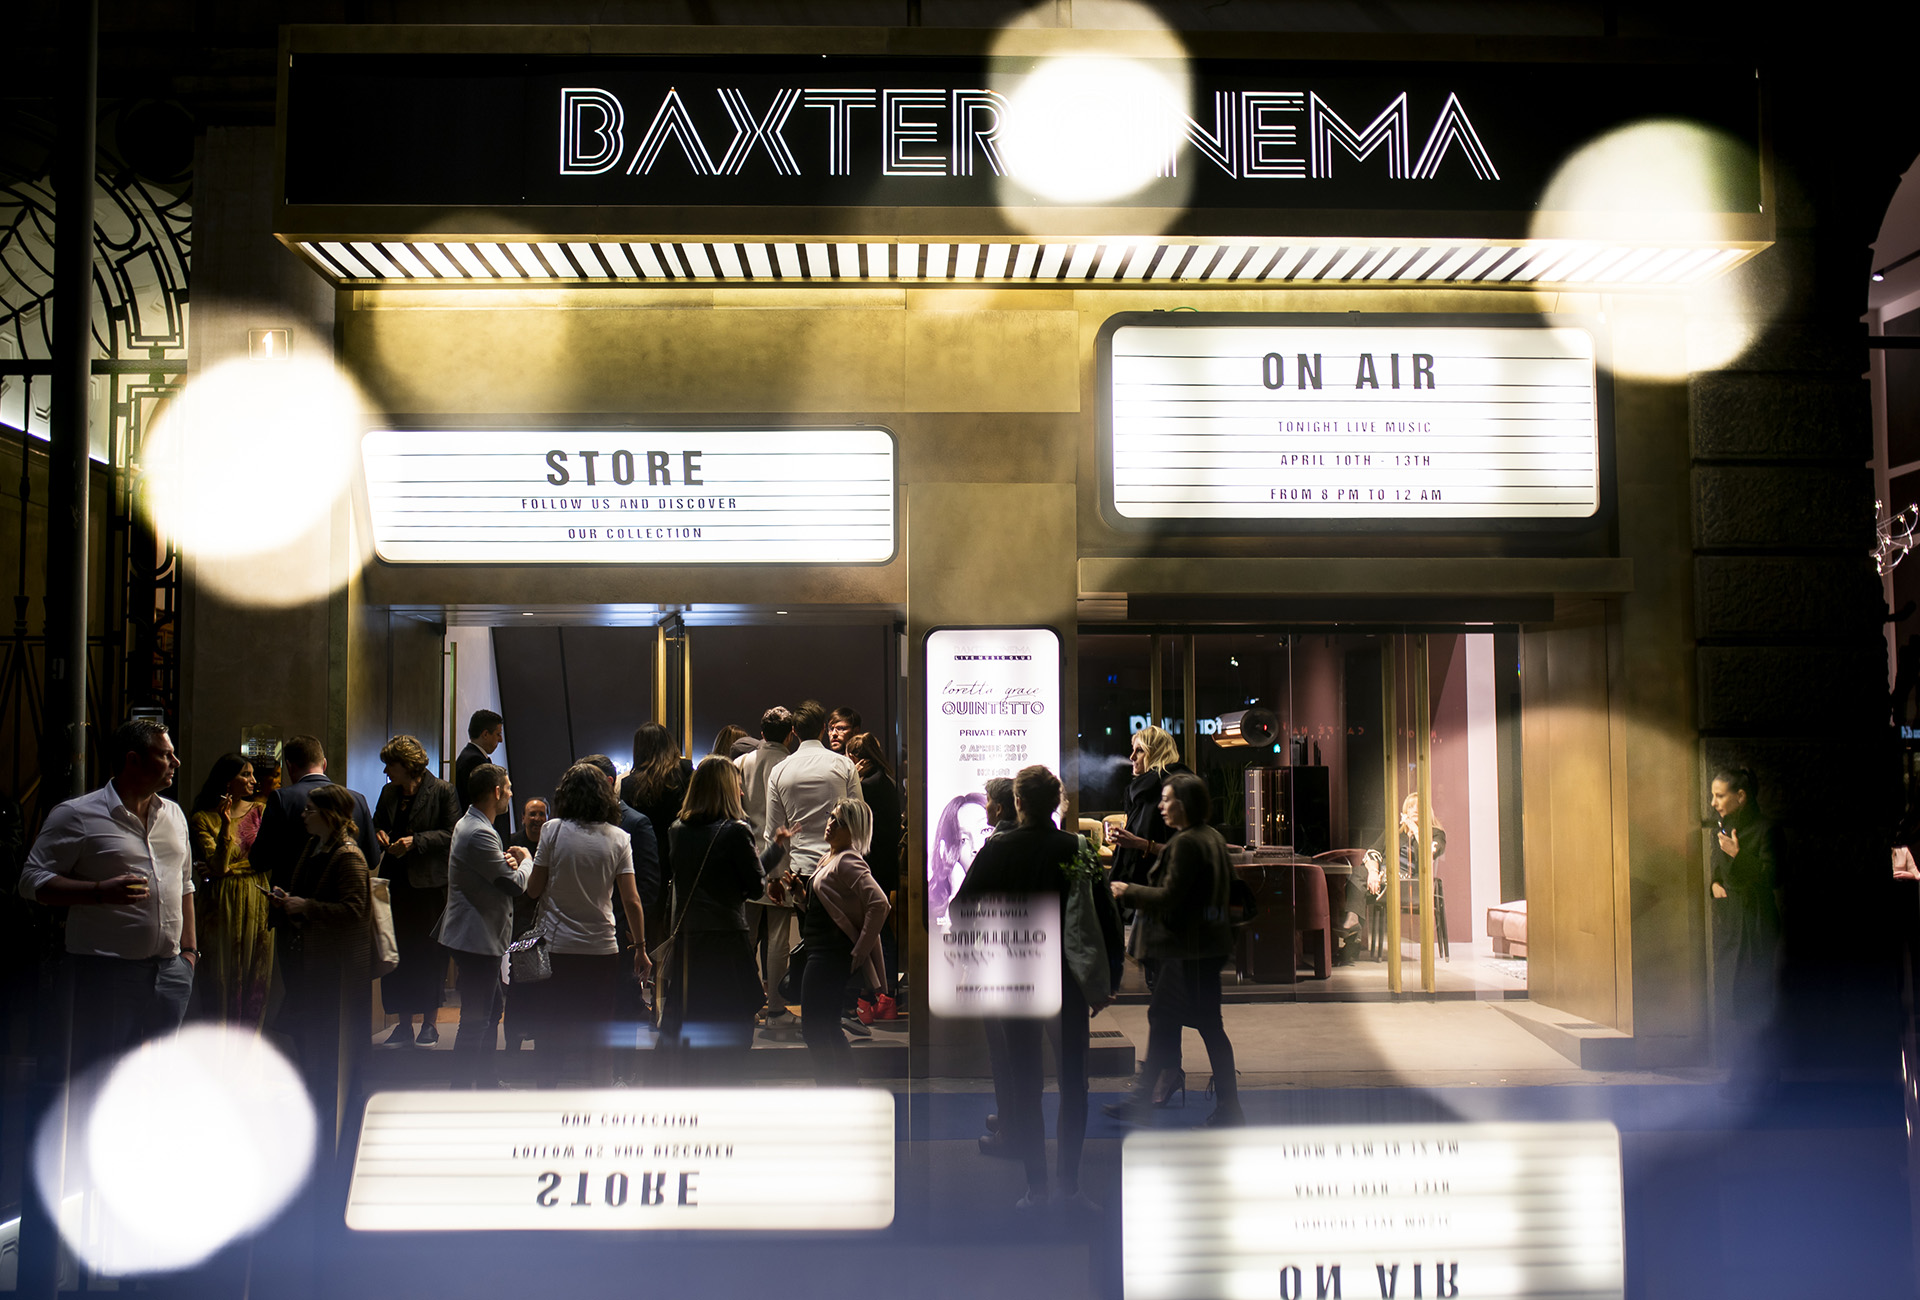 BAXTER CINEMA MUSIC LIVE CLUB - FUORISALONE 2019 PRIVATE PARTY